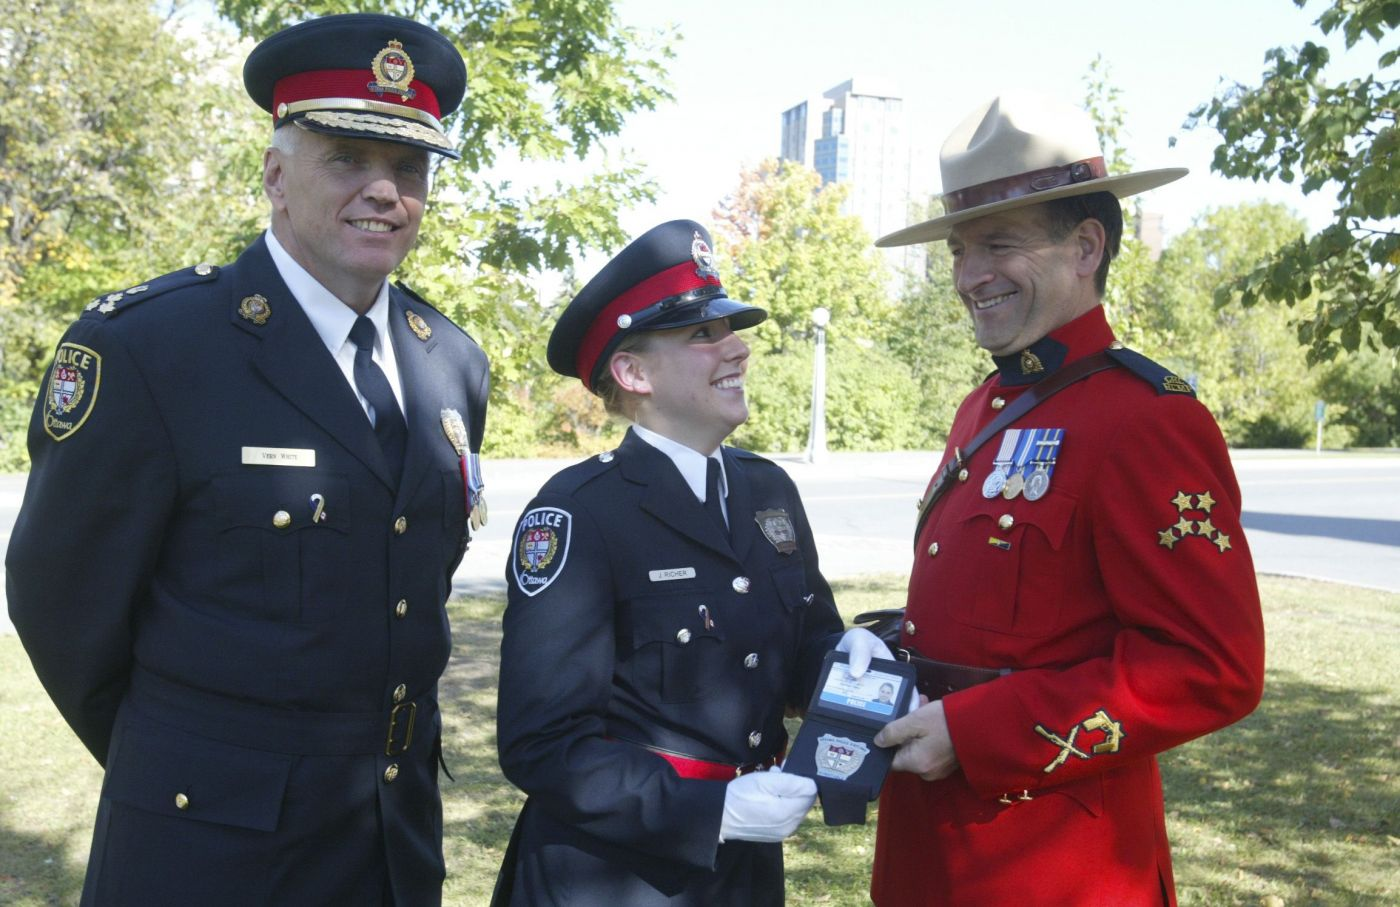 Colour photograph of two older men and a young woman in a park. The woman and one of the men wear the dark blue uniform of the Ottawa police. The other man wears the red uniform of the Royal Canadian Mounted Police. The man in red presents a police badge to the woman; they are looking at each other. The other man looks directly at the camera. All three have big smiles.